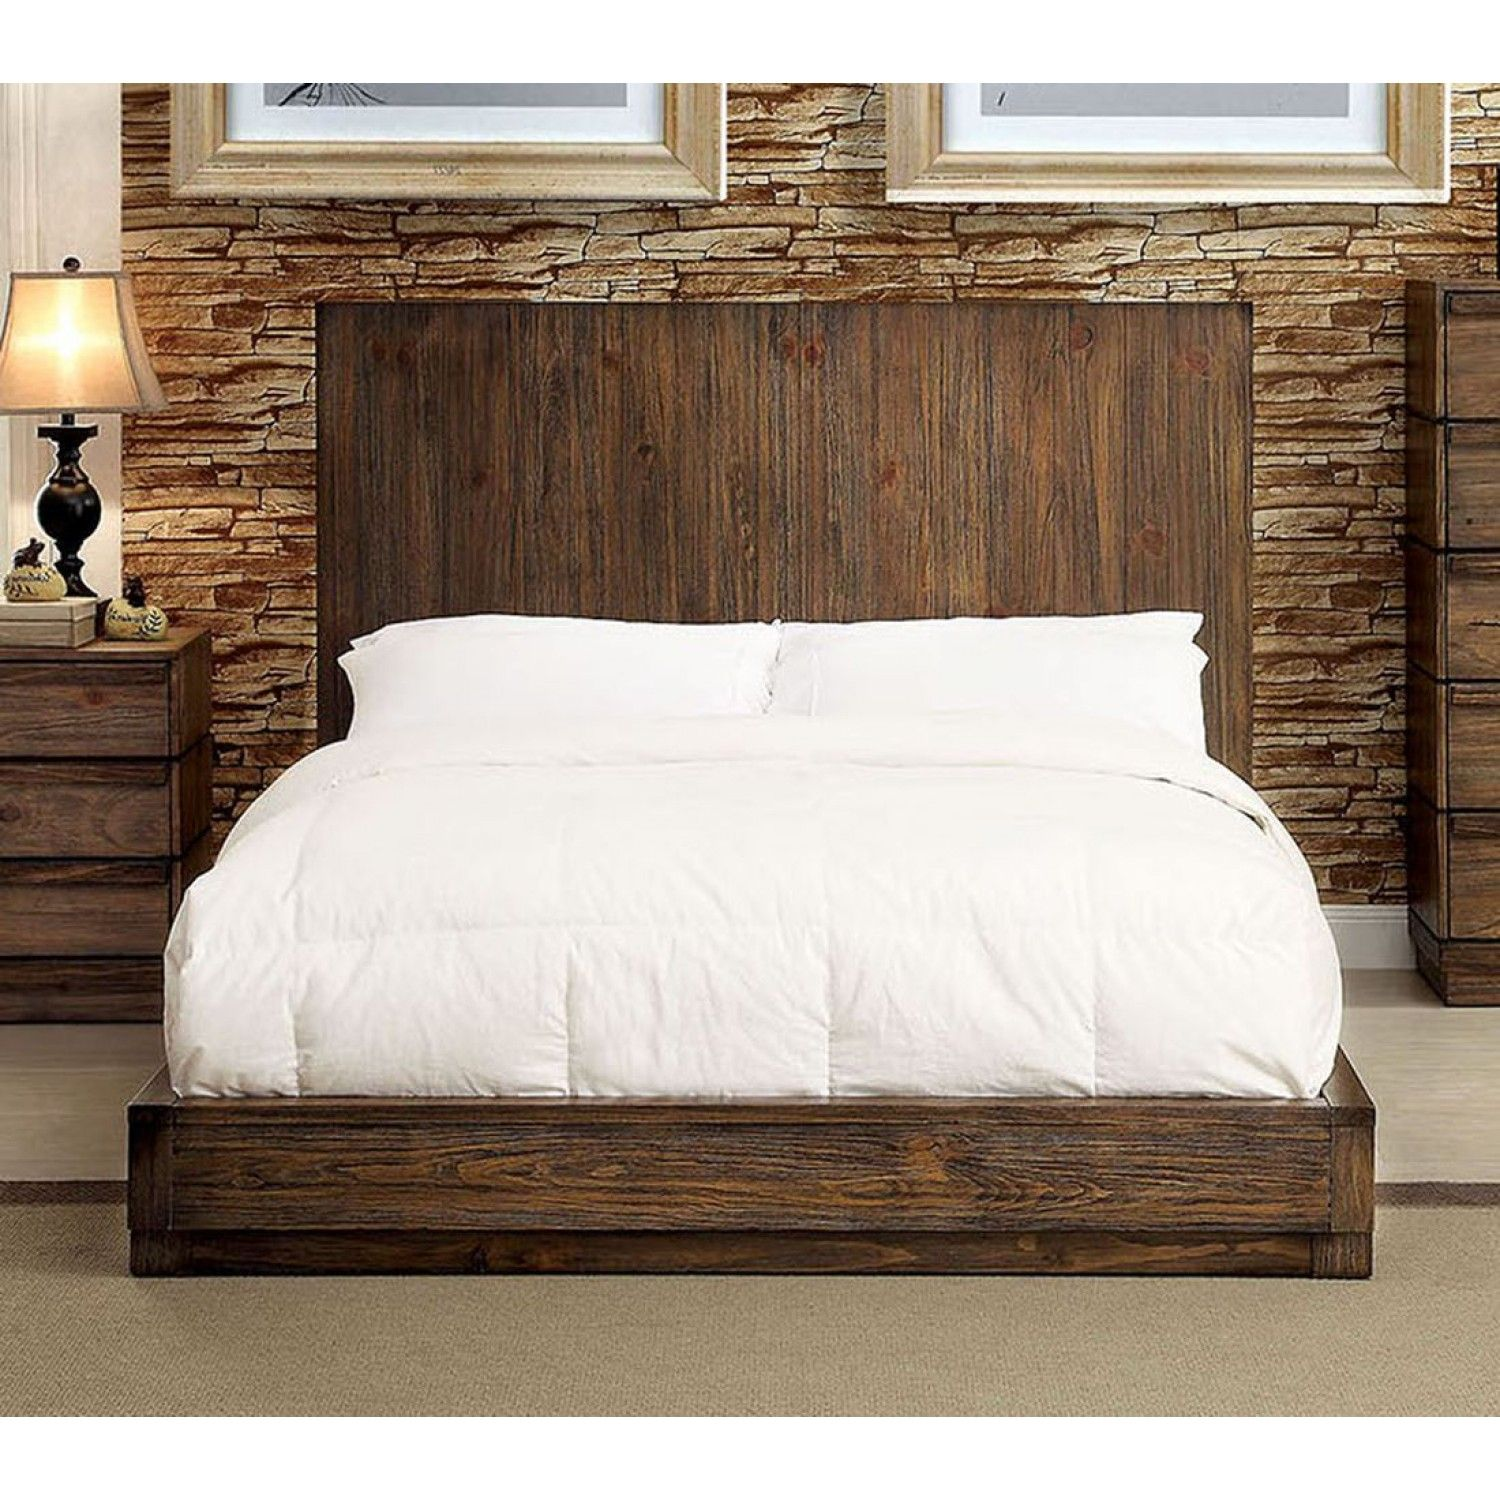 Furniture of America Amarante Queen Bed in Rustic Natural